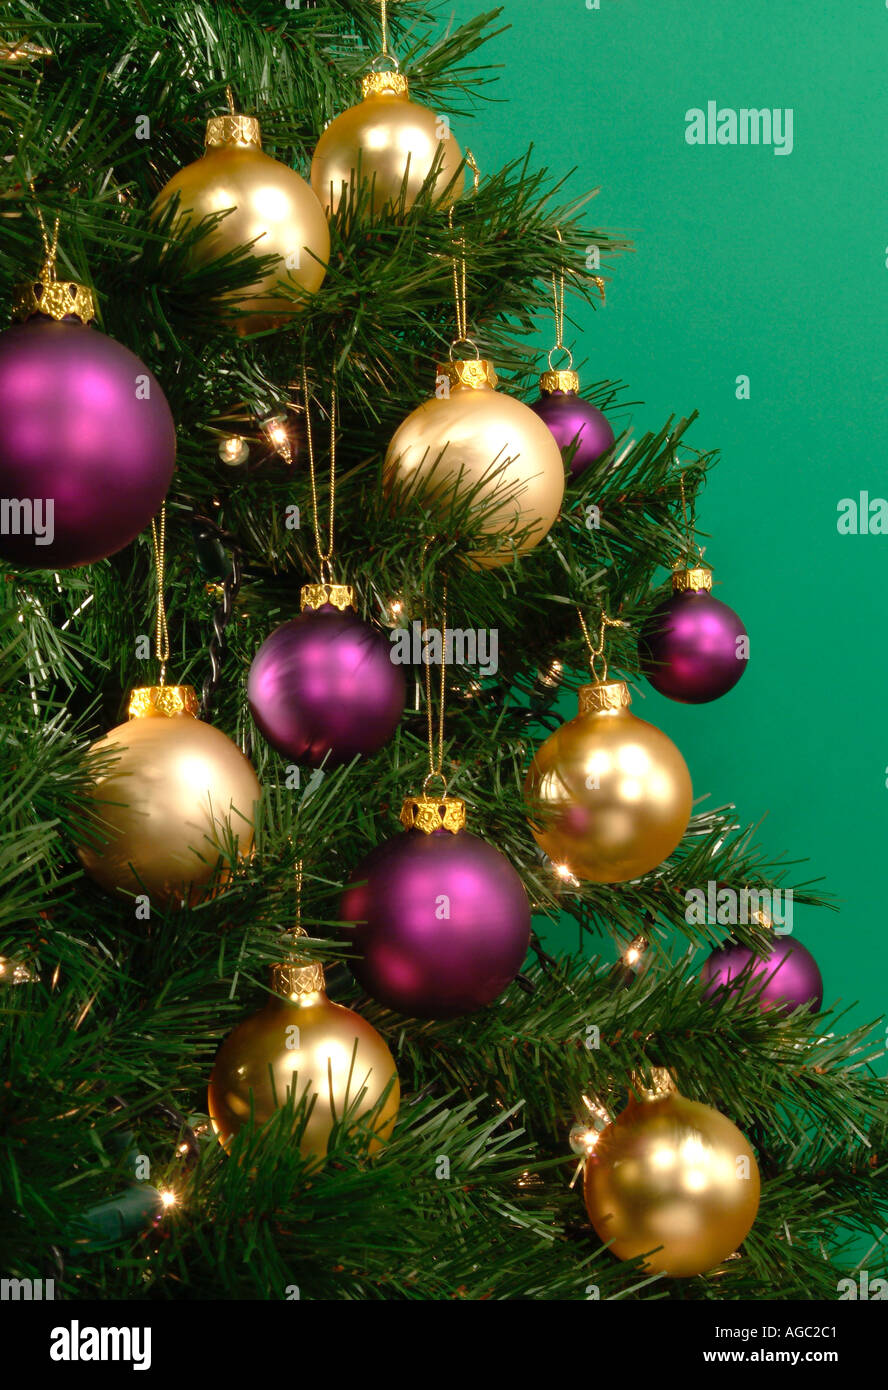 Purple And Gold Christmas Tree High Resolution Stock Photography And Images Alamy